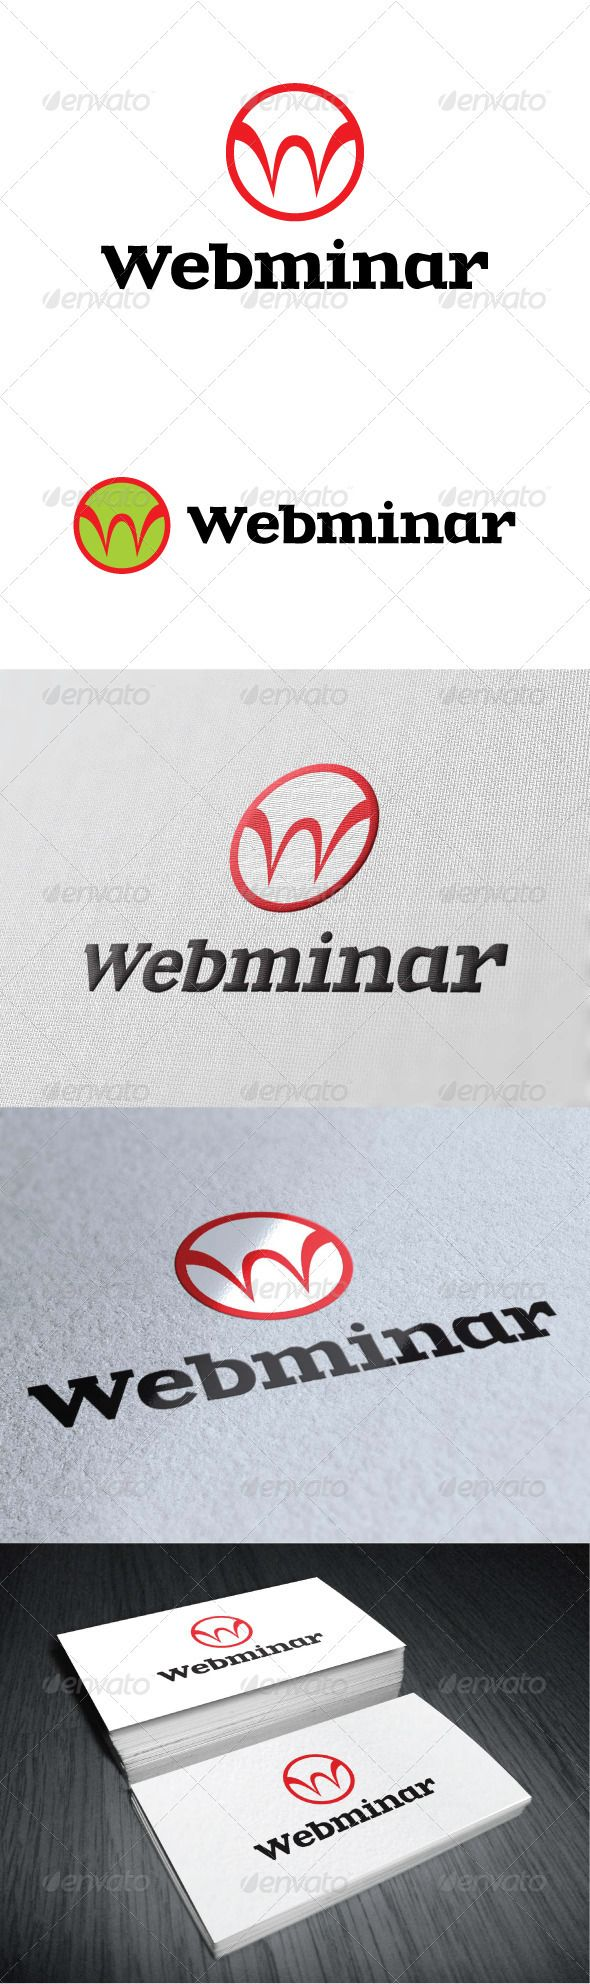 Webminar Logo Template GraphicRiver Re sizable Vector EPS